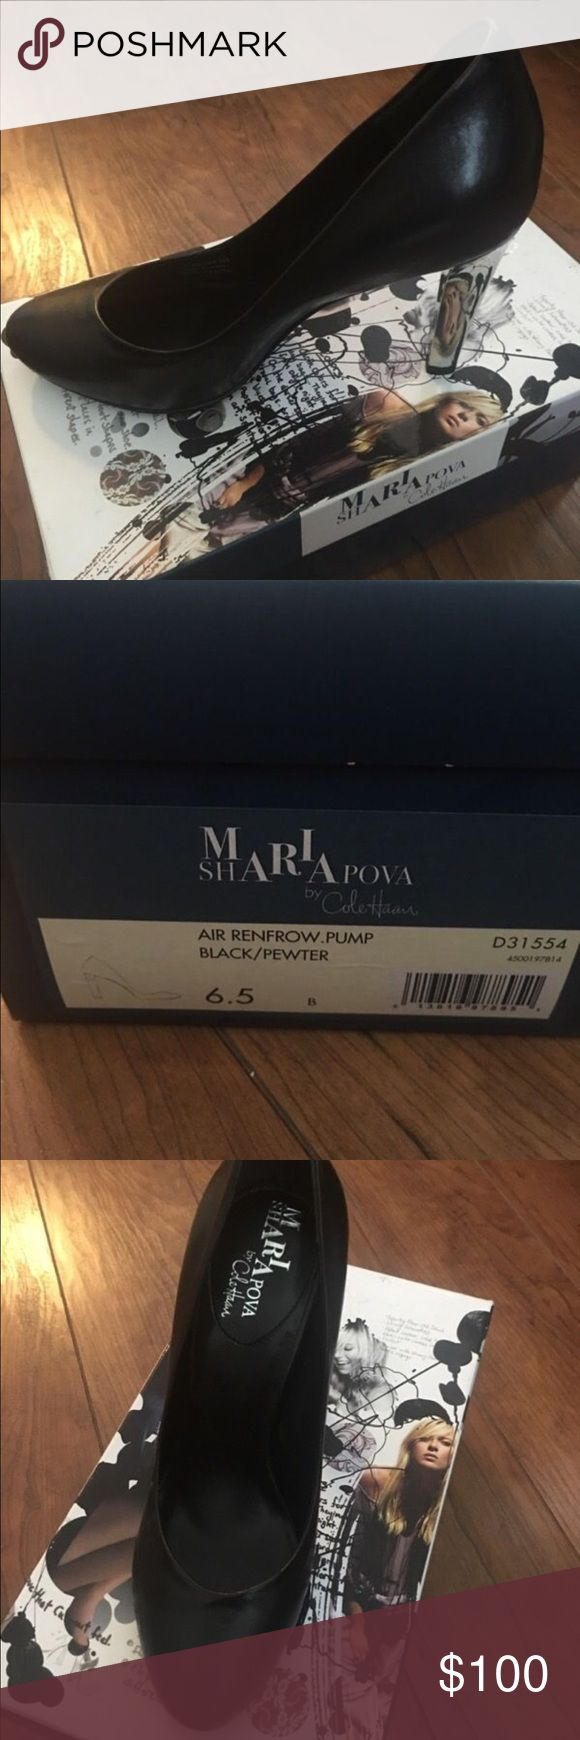 NIB Maria Shara Pova by Cole Hann. These are new, with Nike technology.  Most comfortable heels I have ever owned.  This one was little snug.  Size is 6.5 B Cole Haan Shoes Heels